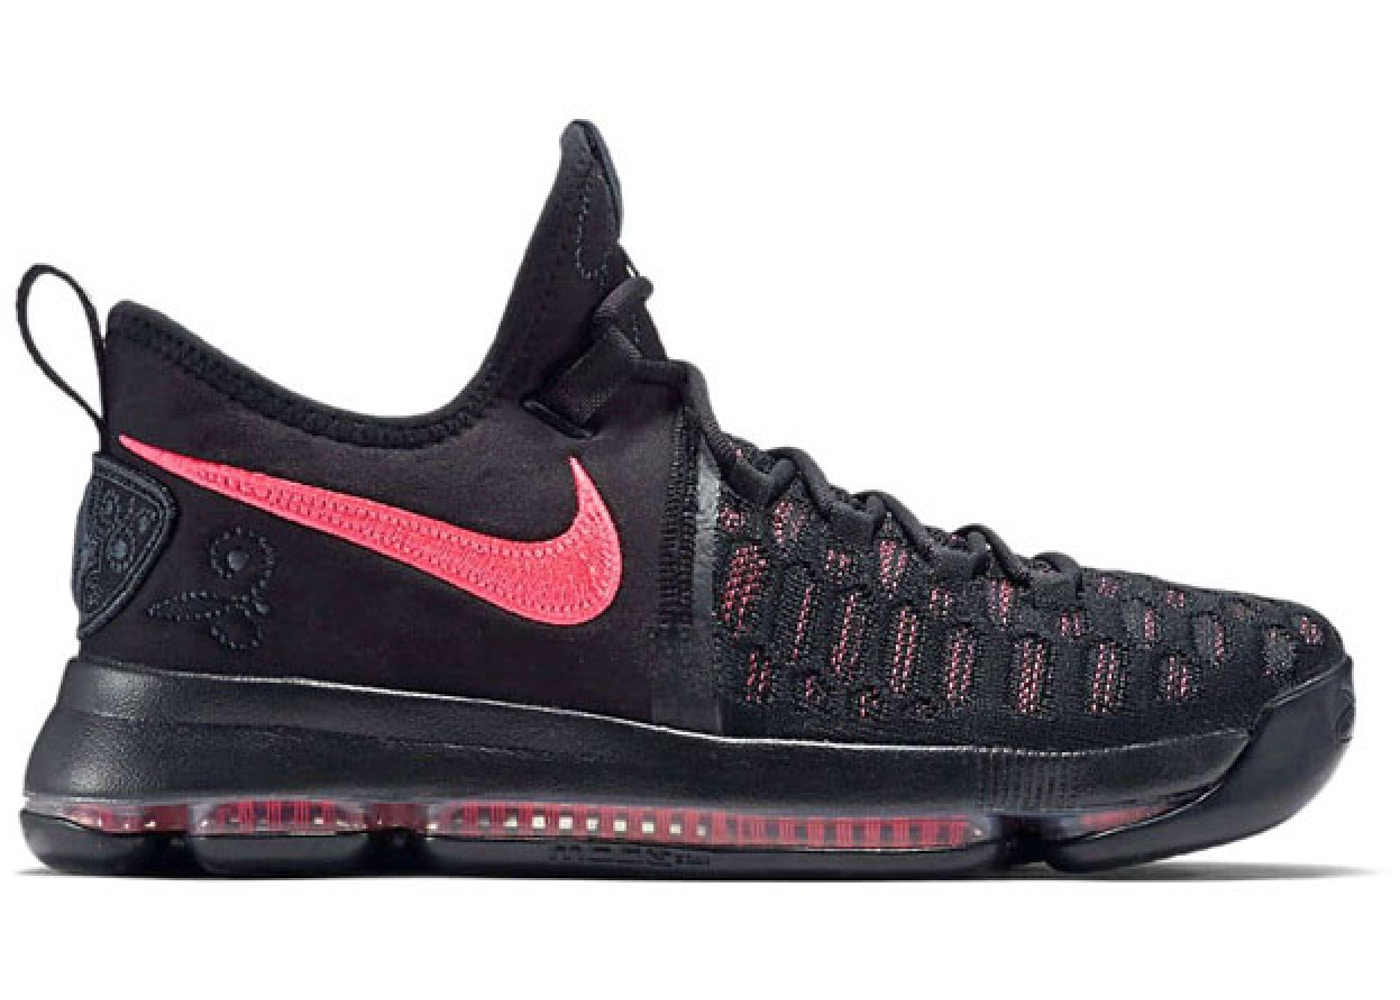 official photos 68819 15a12 KD 9 Aunt Pearl